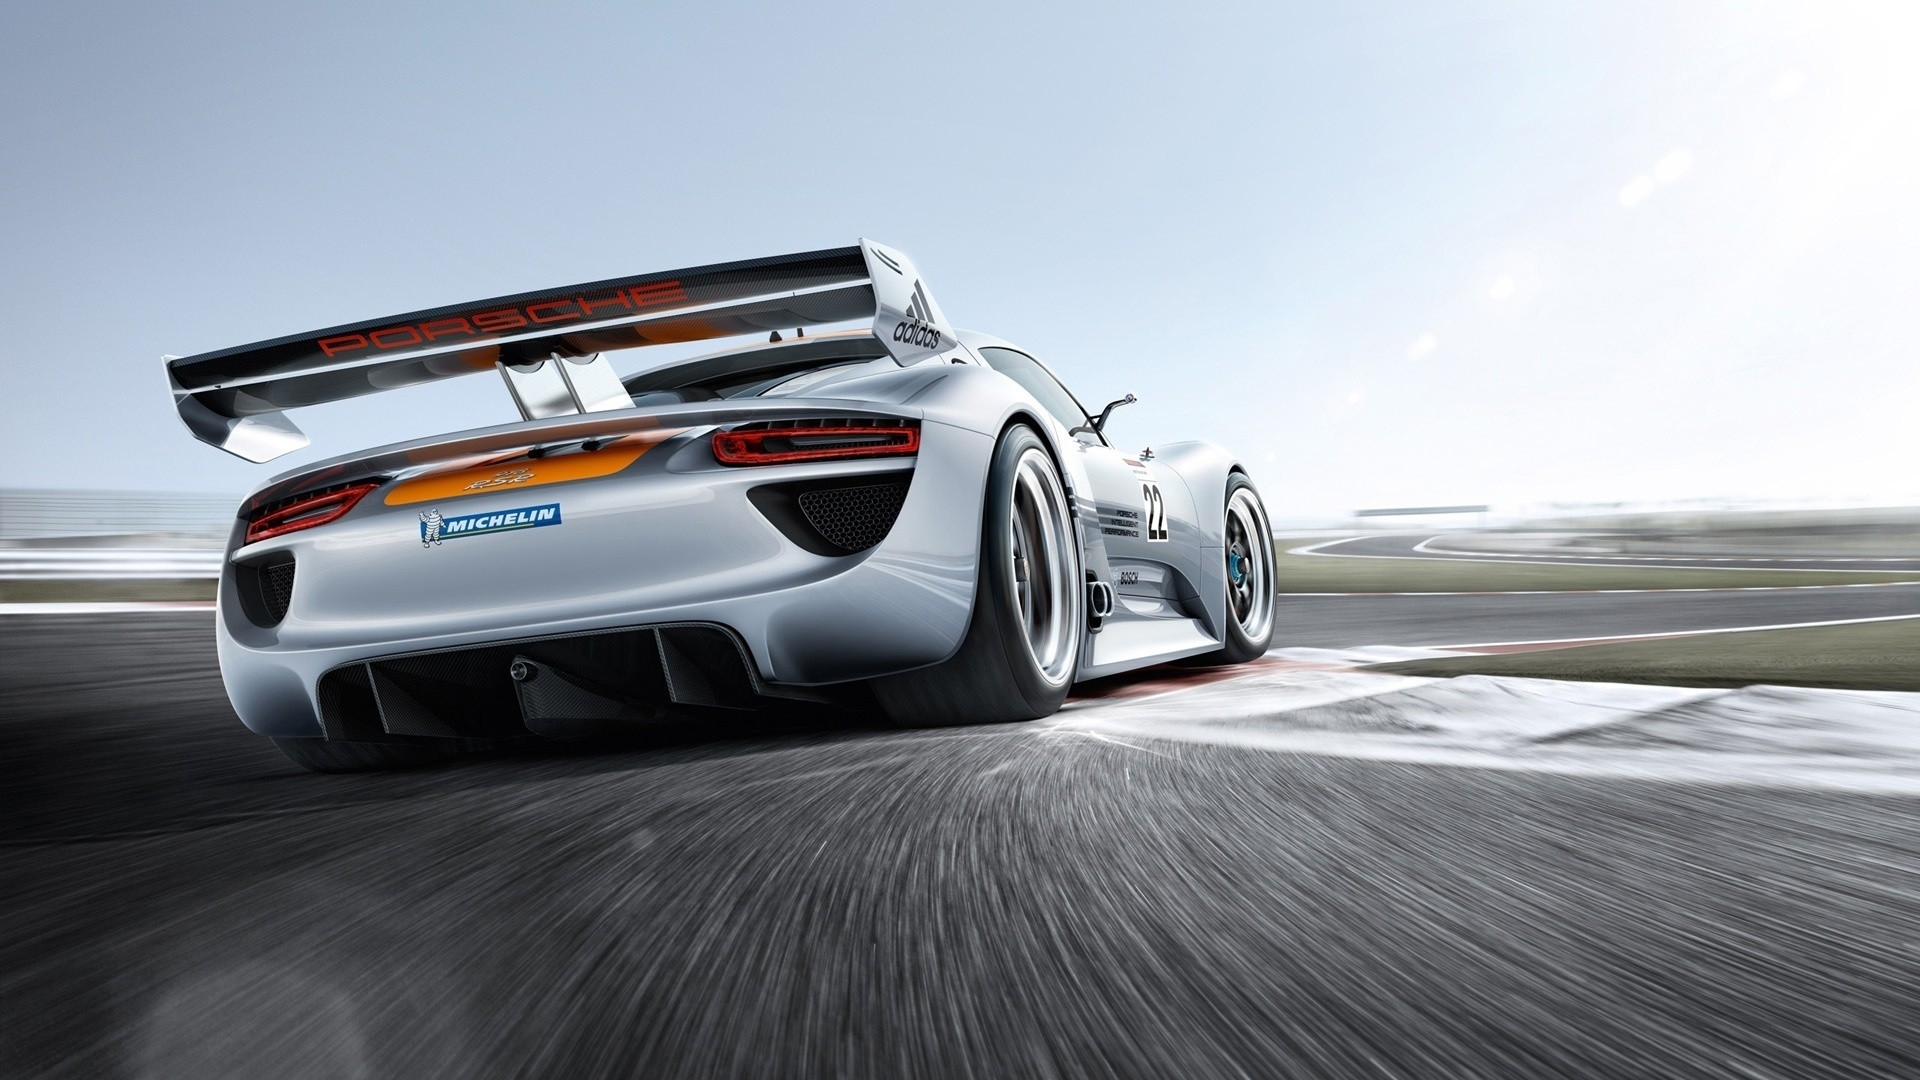 white cars vehicles racing porsche 918 modified 1920x1080 racing track race wallpaper. Black Bedroom Furniture Sets. Home Design Ideas